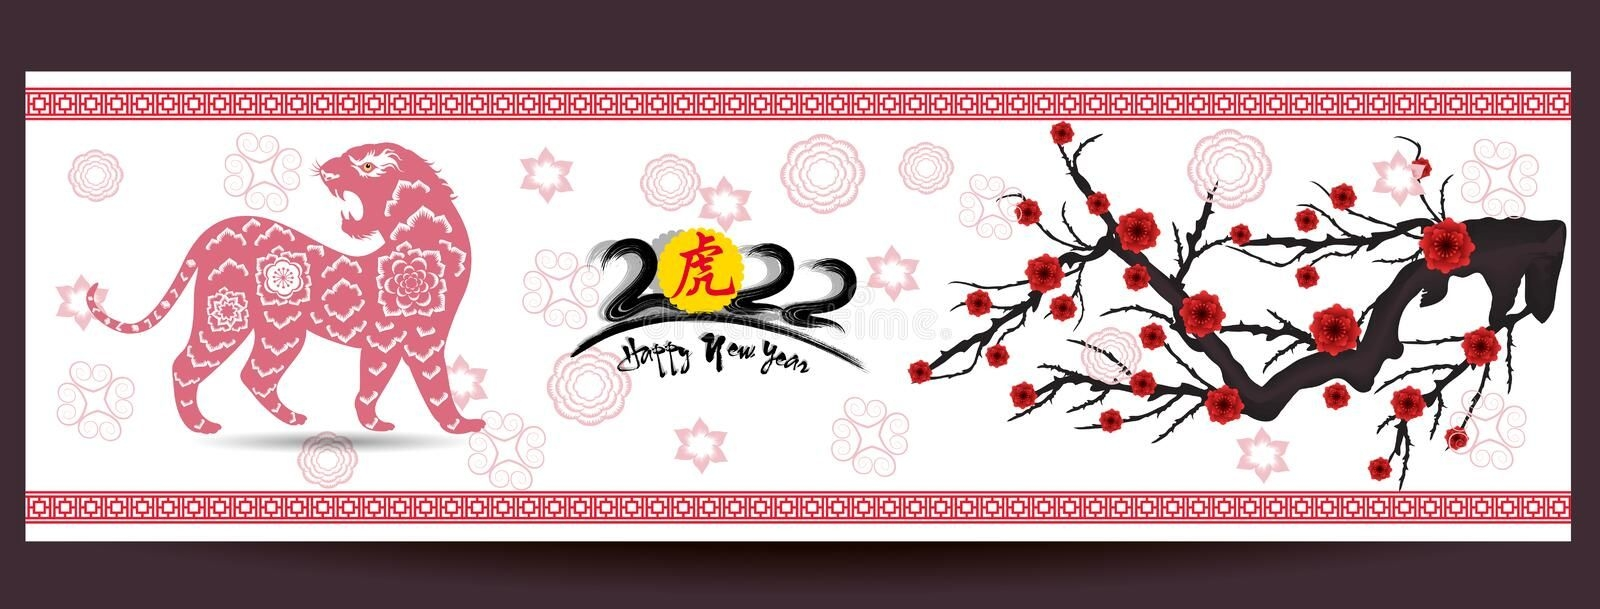 Chinese New Year 2022 - Year Of The Tiger. Lunar New Year